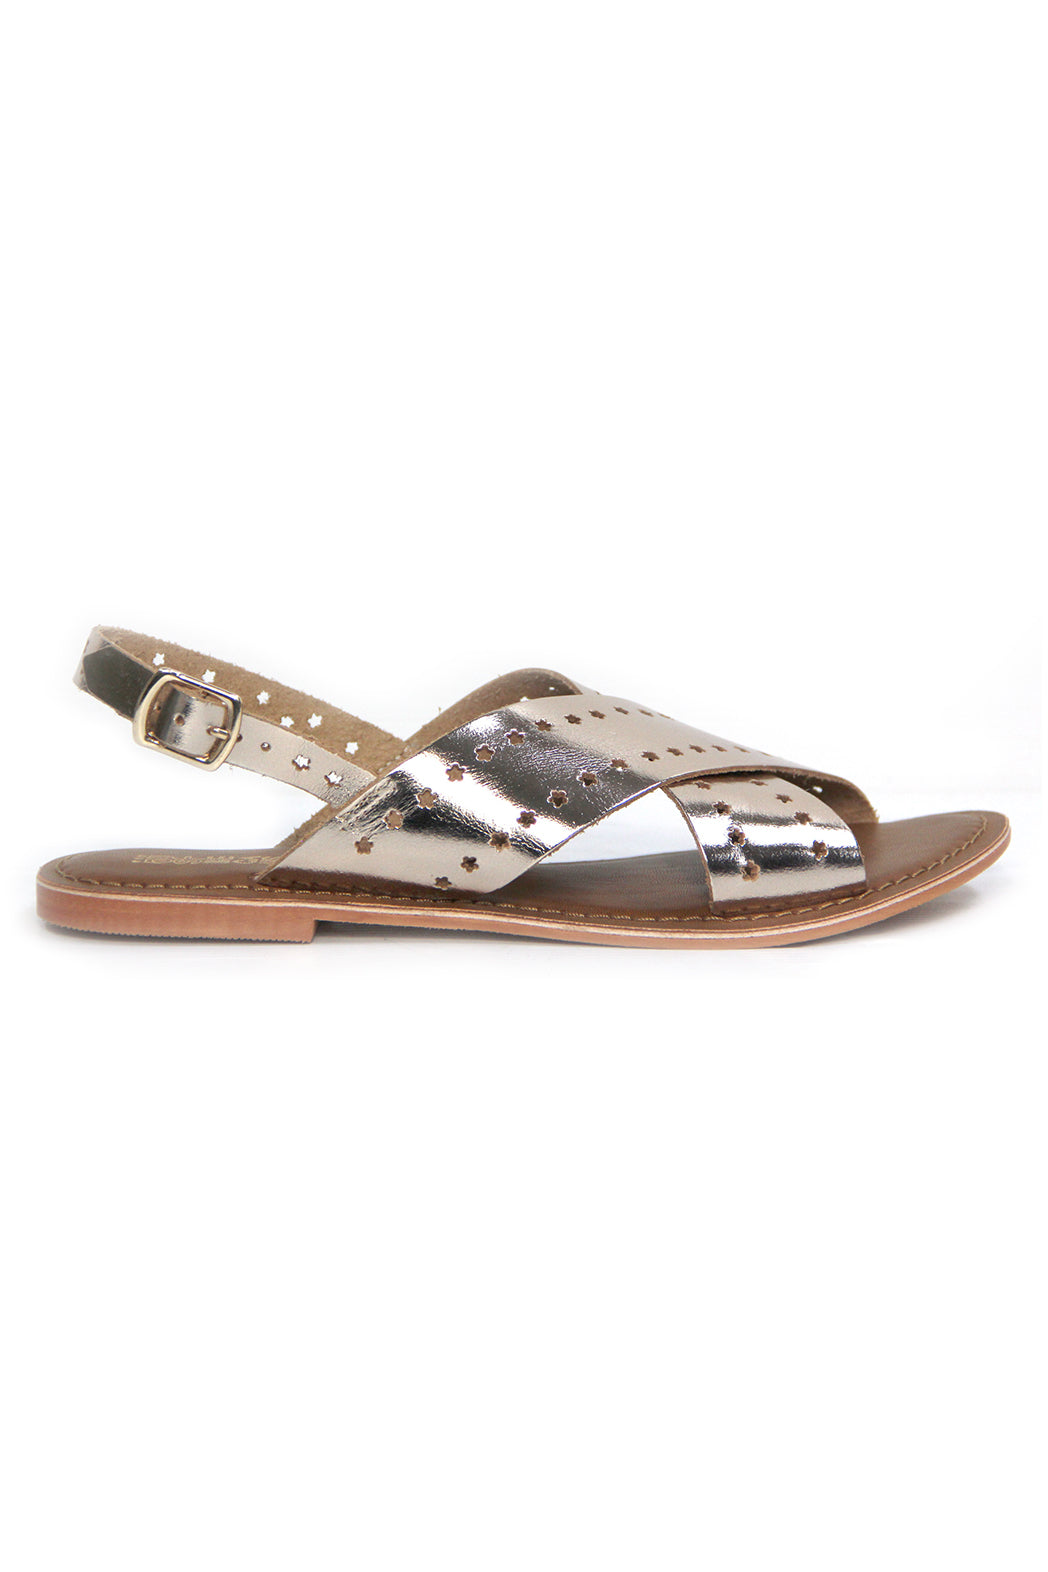 Just Because Malita Sandal in Gold